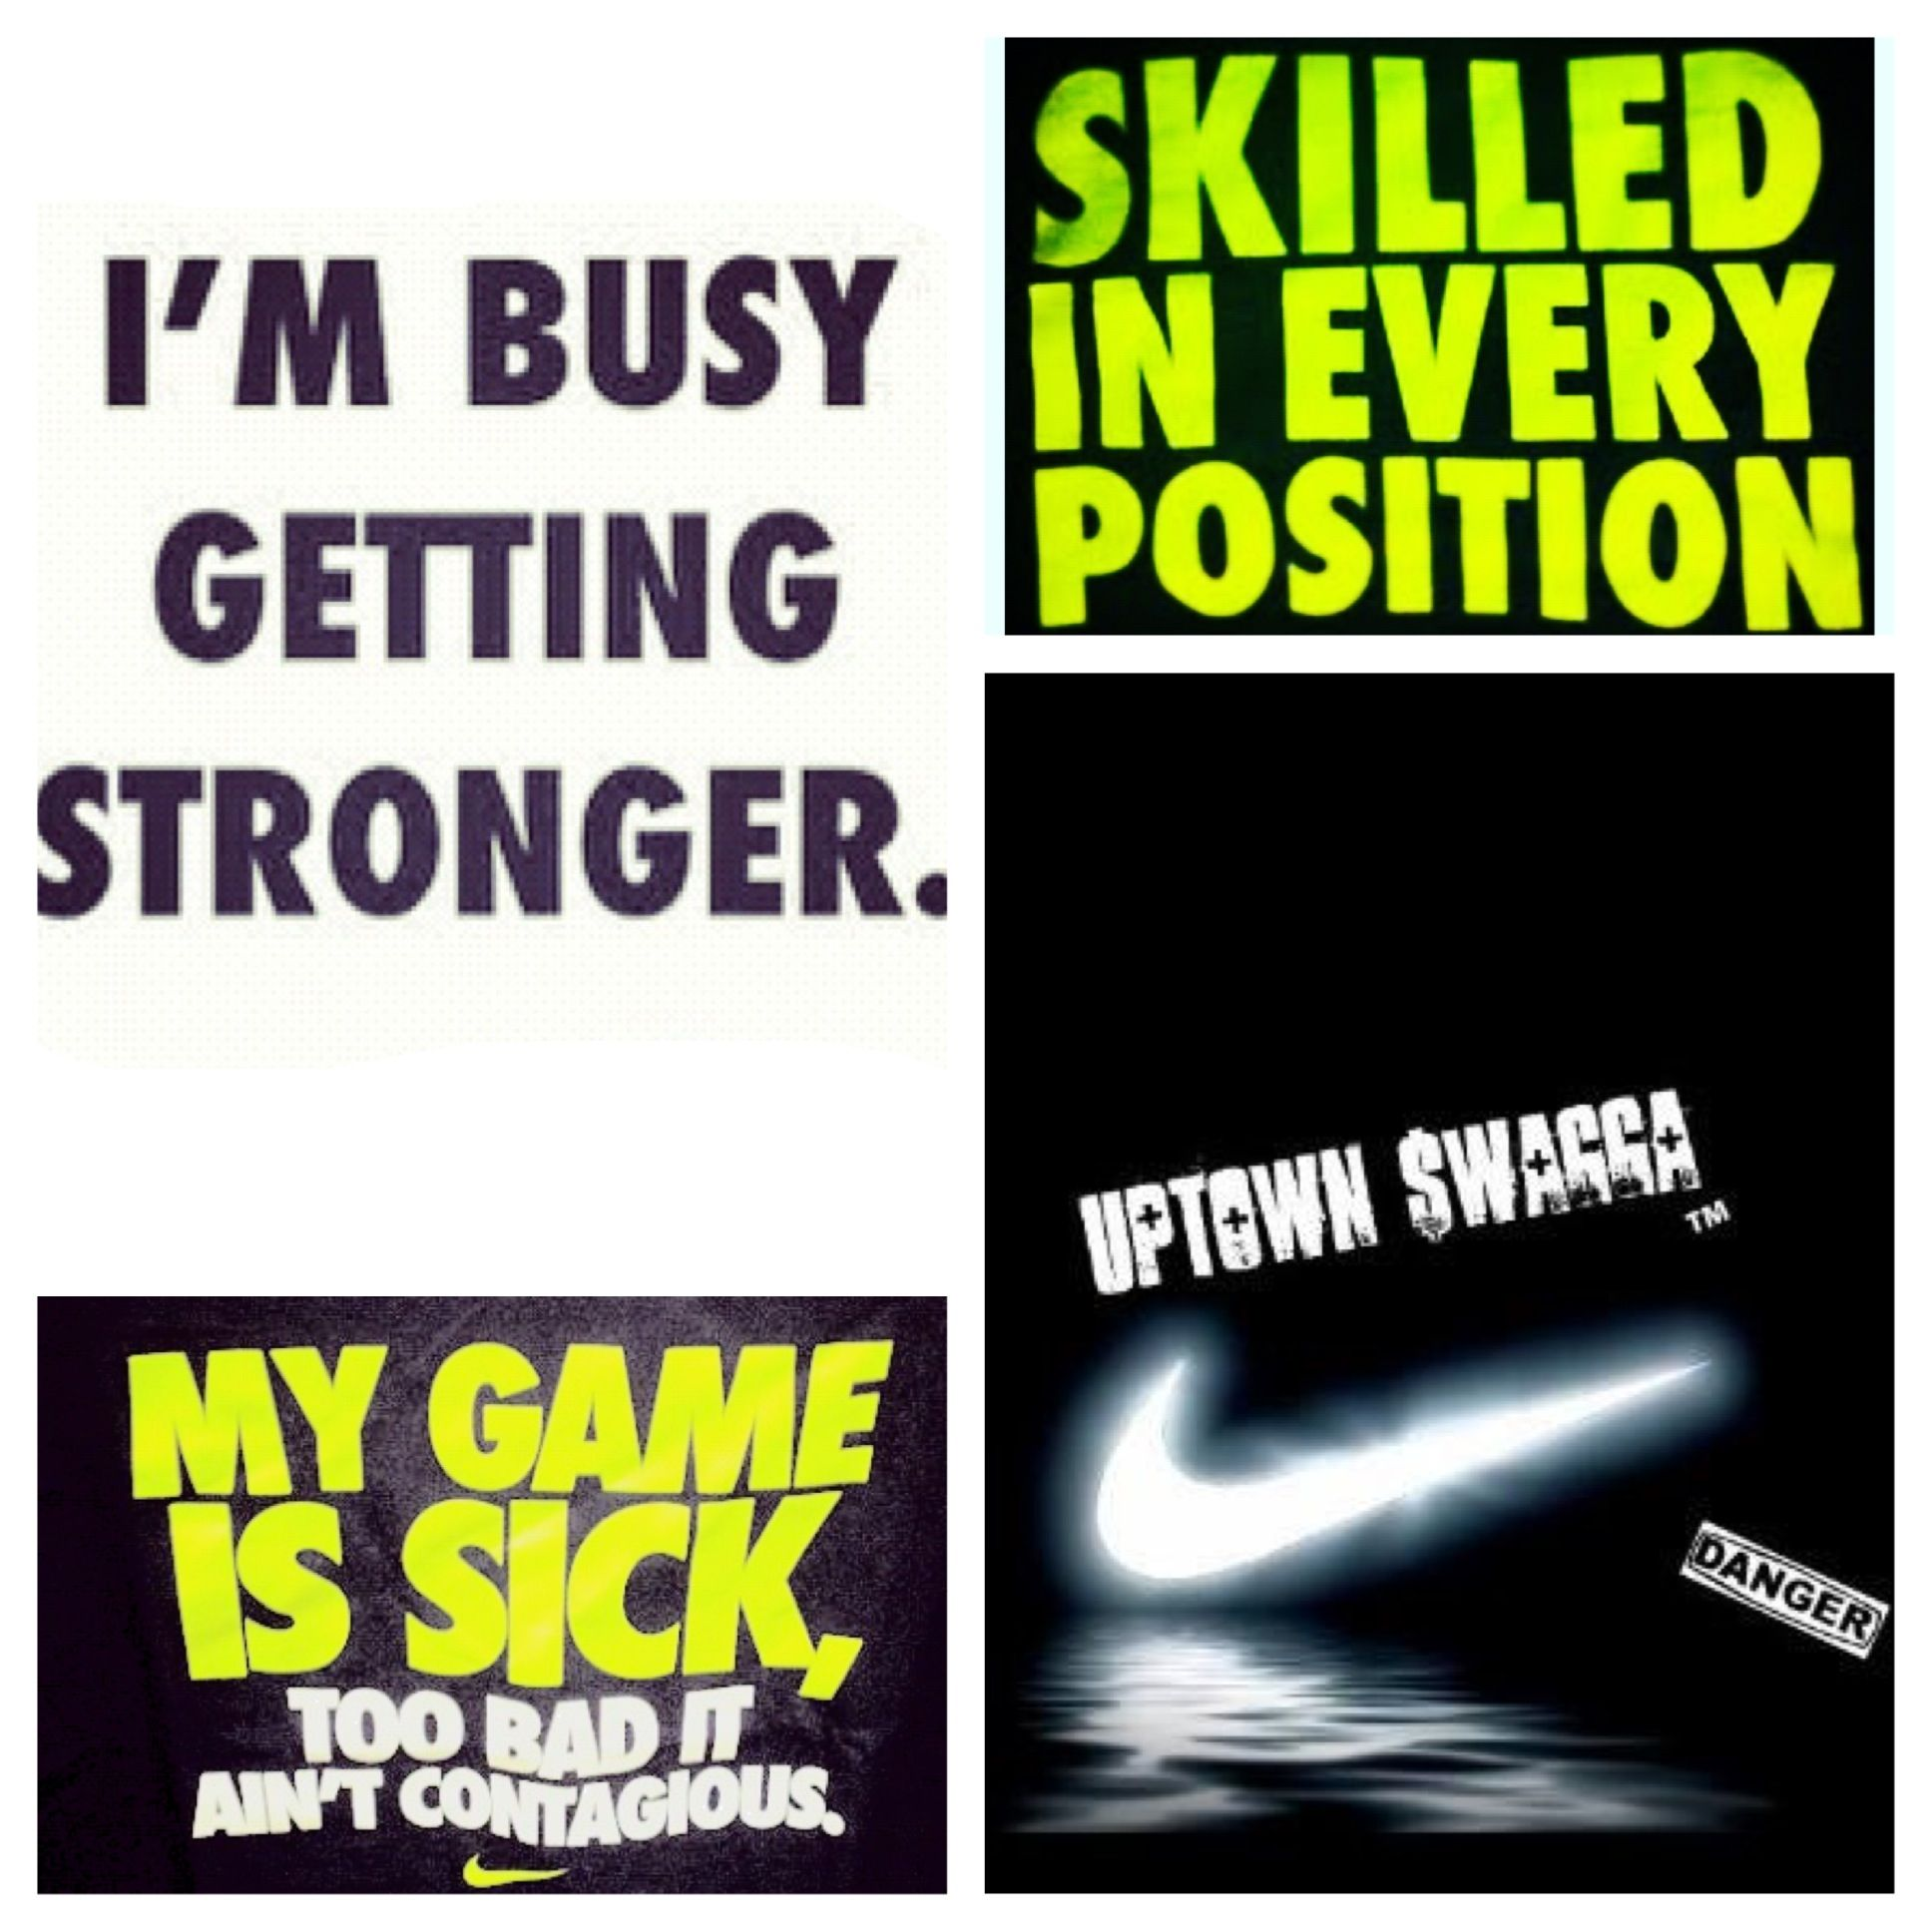 Some awesome Nike quotes